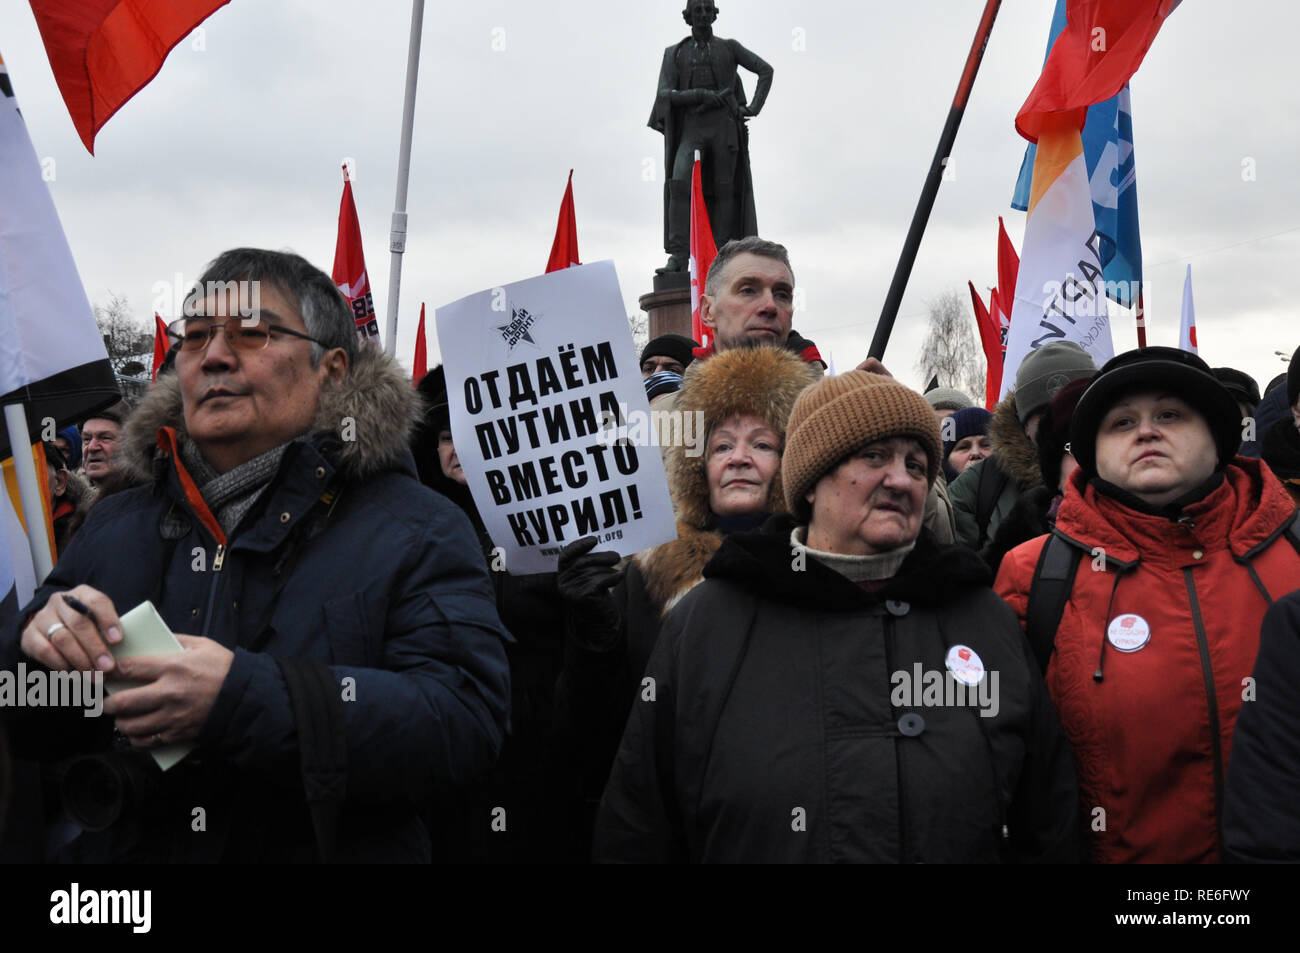 Moscow, Russia. 20th Jan, 2019. An activist is holding a sign reading 'We would give up Putin instead of the Kurils'. Hundreds from both left and right protest possible handover of contested Kuril islands (Northern territories) to Japan at a rally in central Moscow. Credit: Aleks Lokhmutov/Alamy Live News. - Stock Image